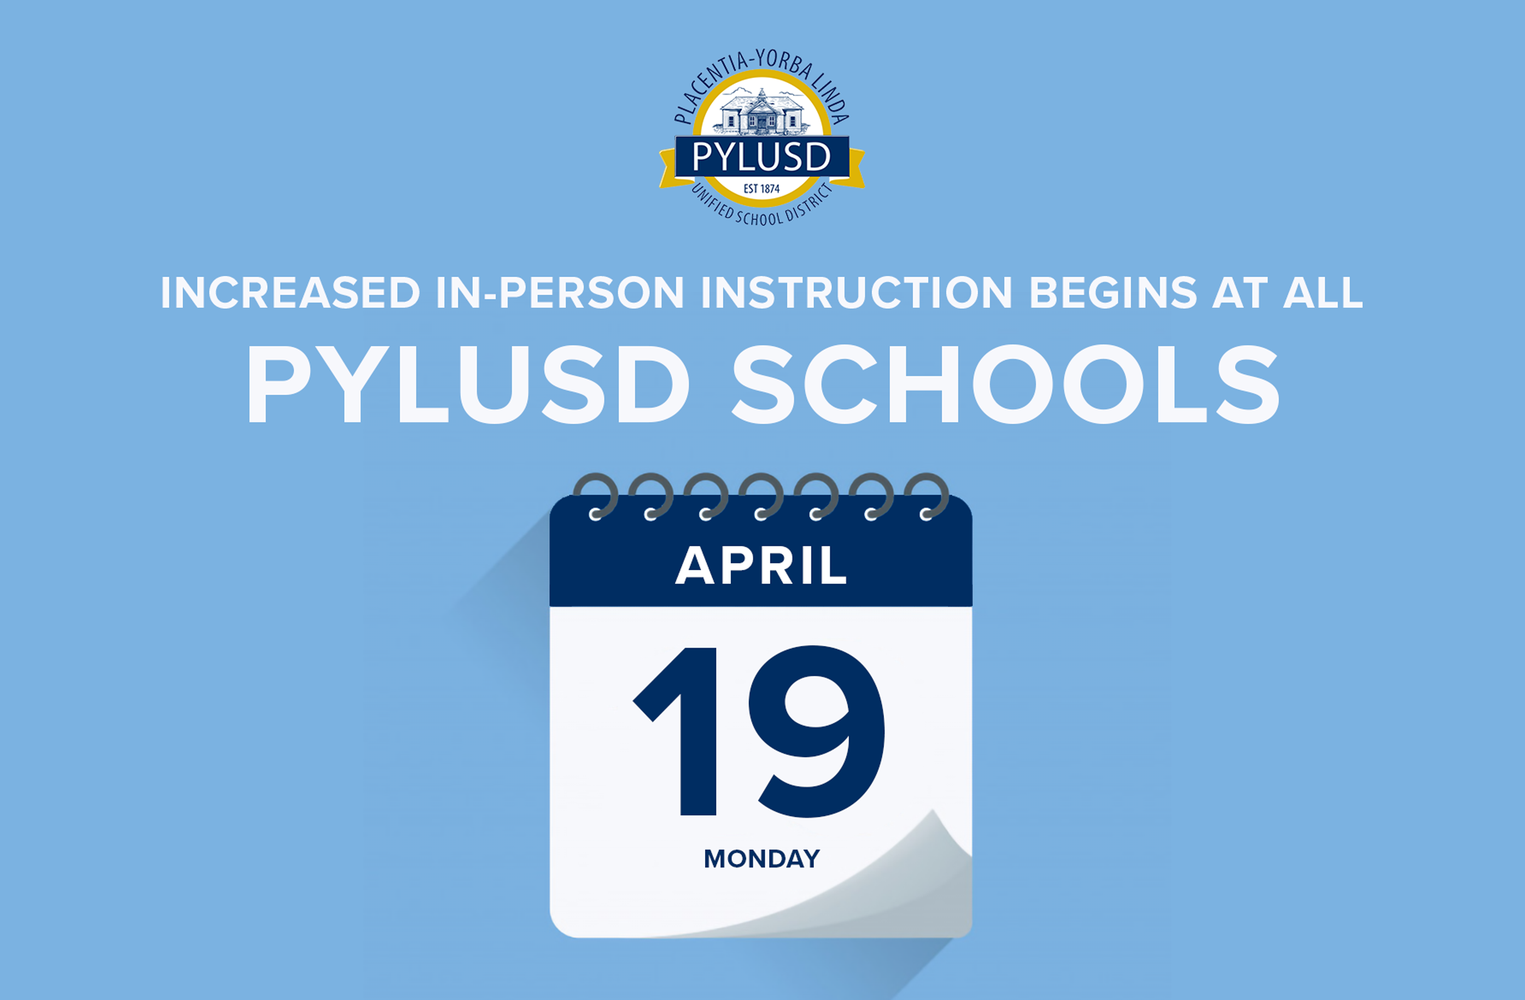 Increased in person instruction begins April 19.